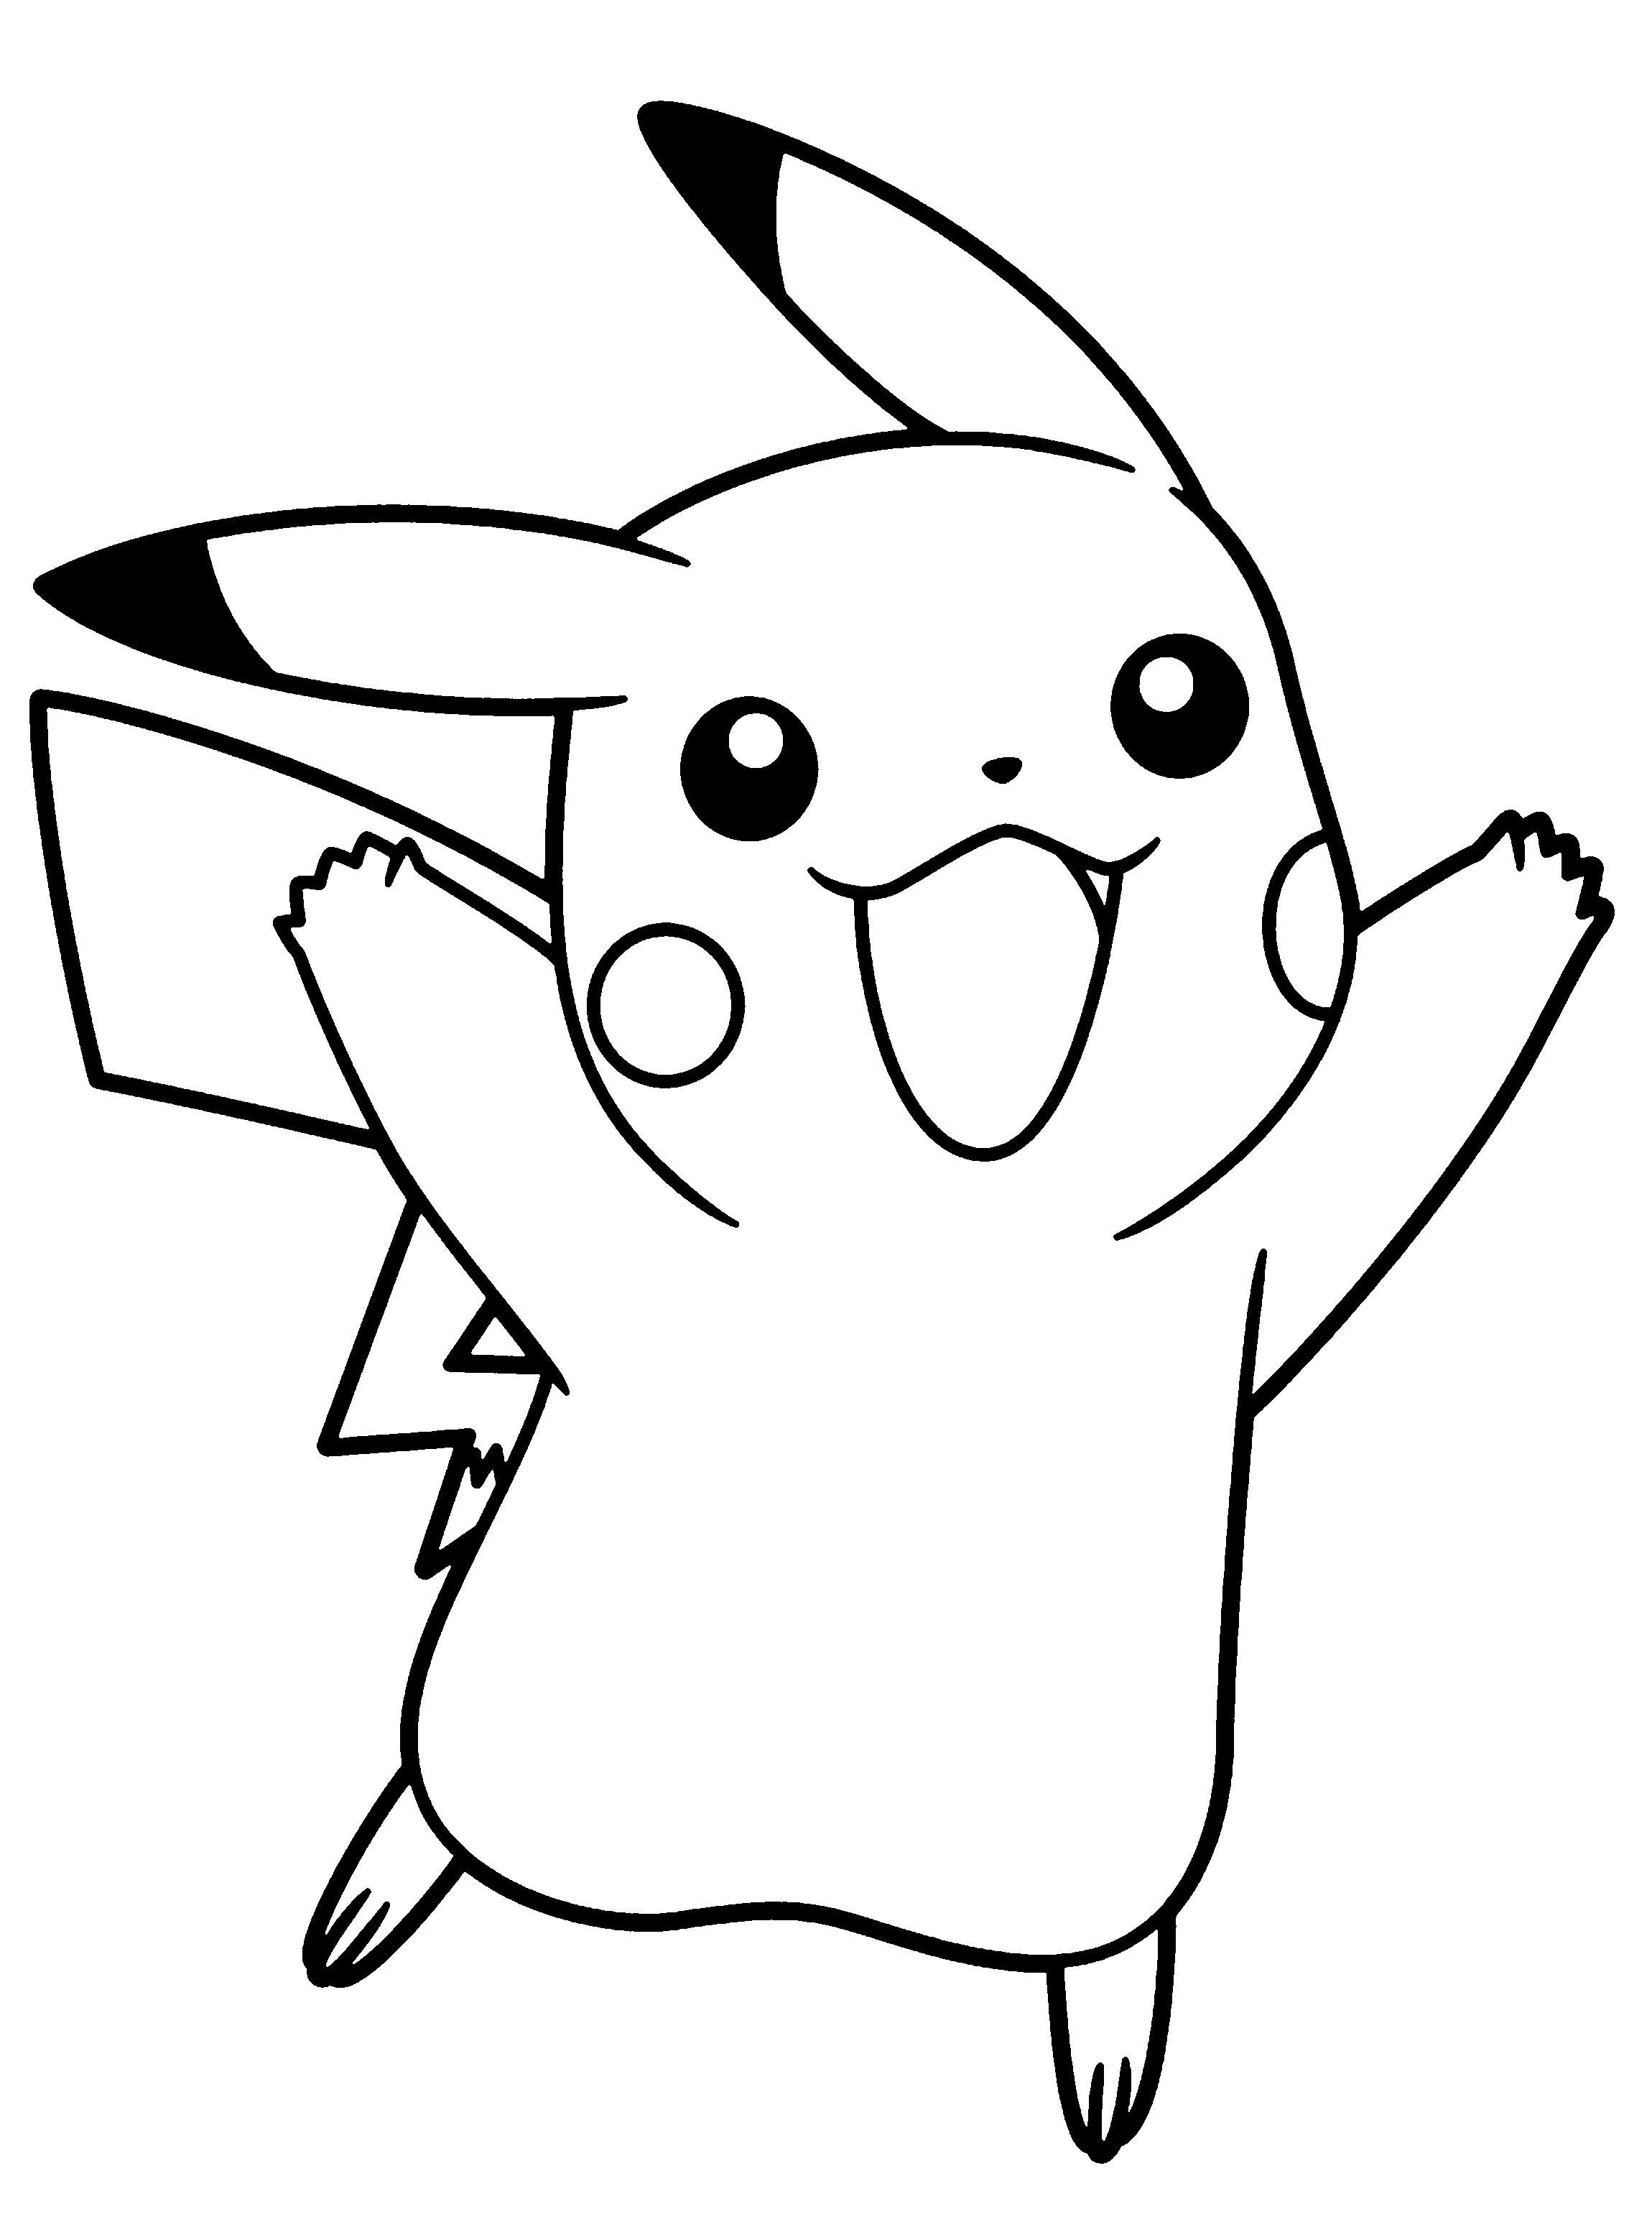 coloring pages of pikachu pickachu coloring pages coloring home pikachu pages coloring of